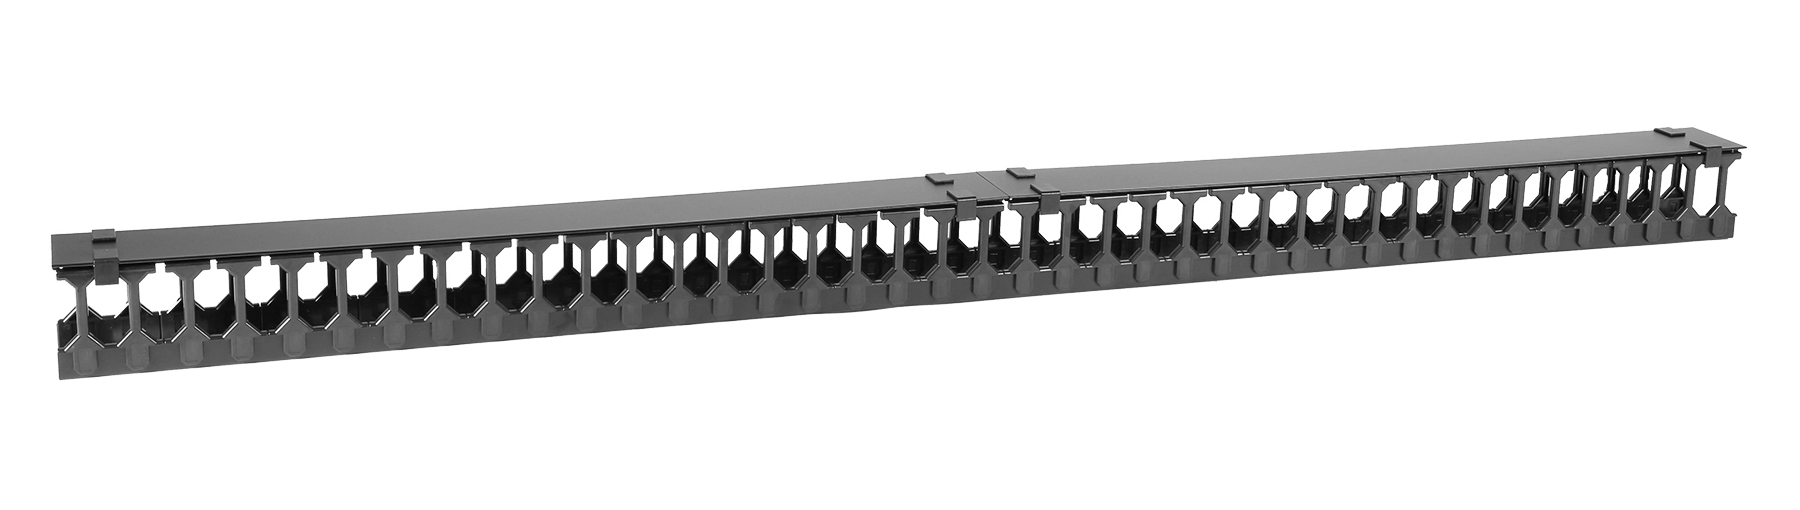 BCO242 - Vertical cable management - 42HE